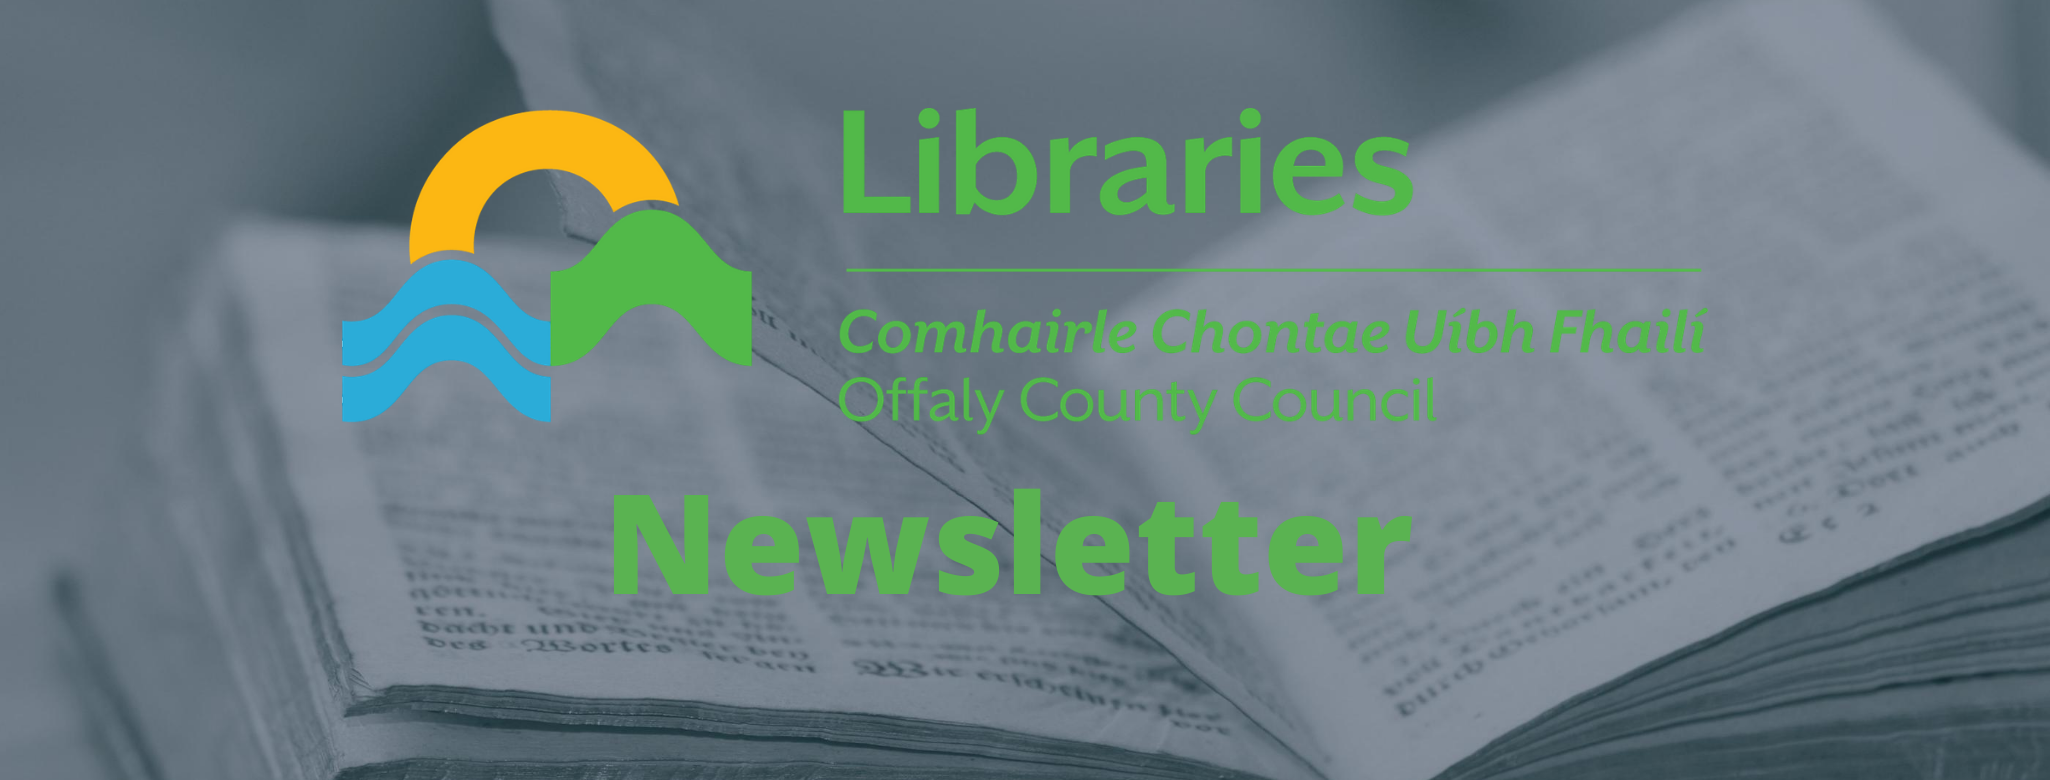 Newsletter with library logo